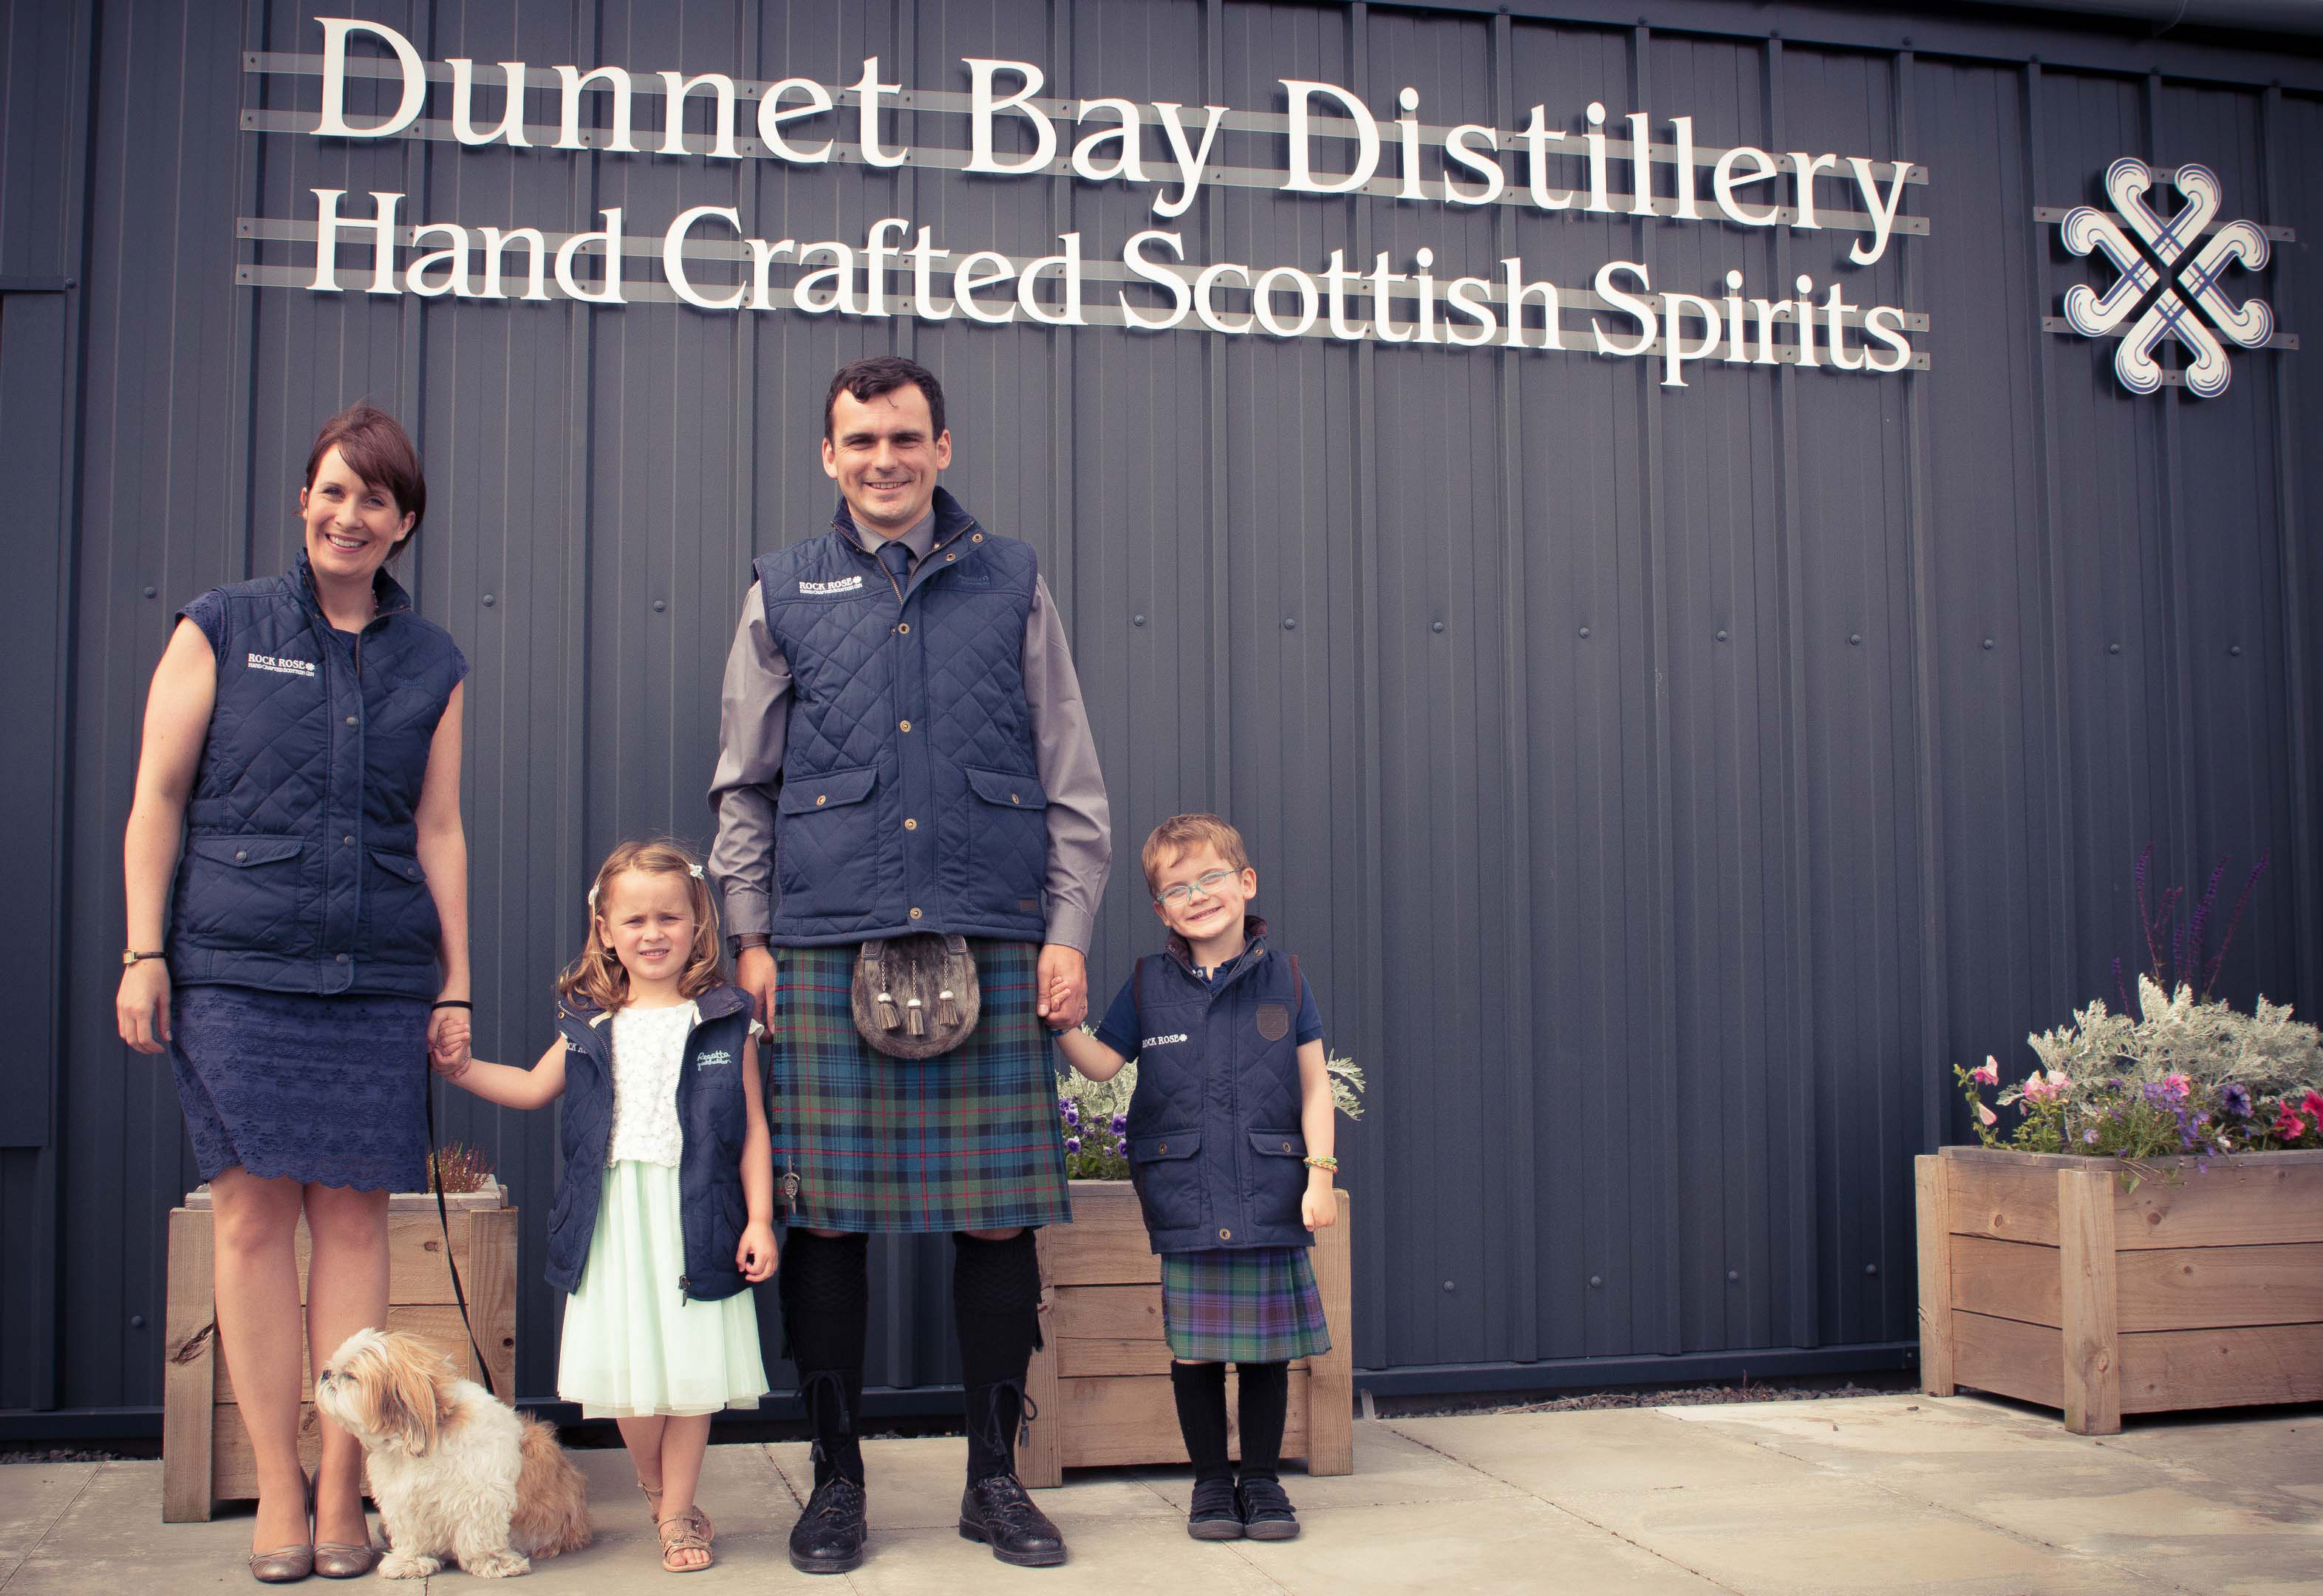 Martin and Claire Murray launched Dunnet Bay Distillery last year